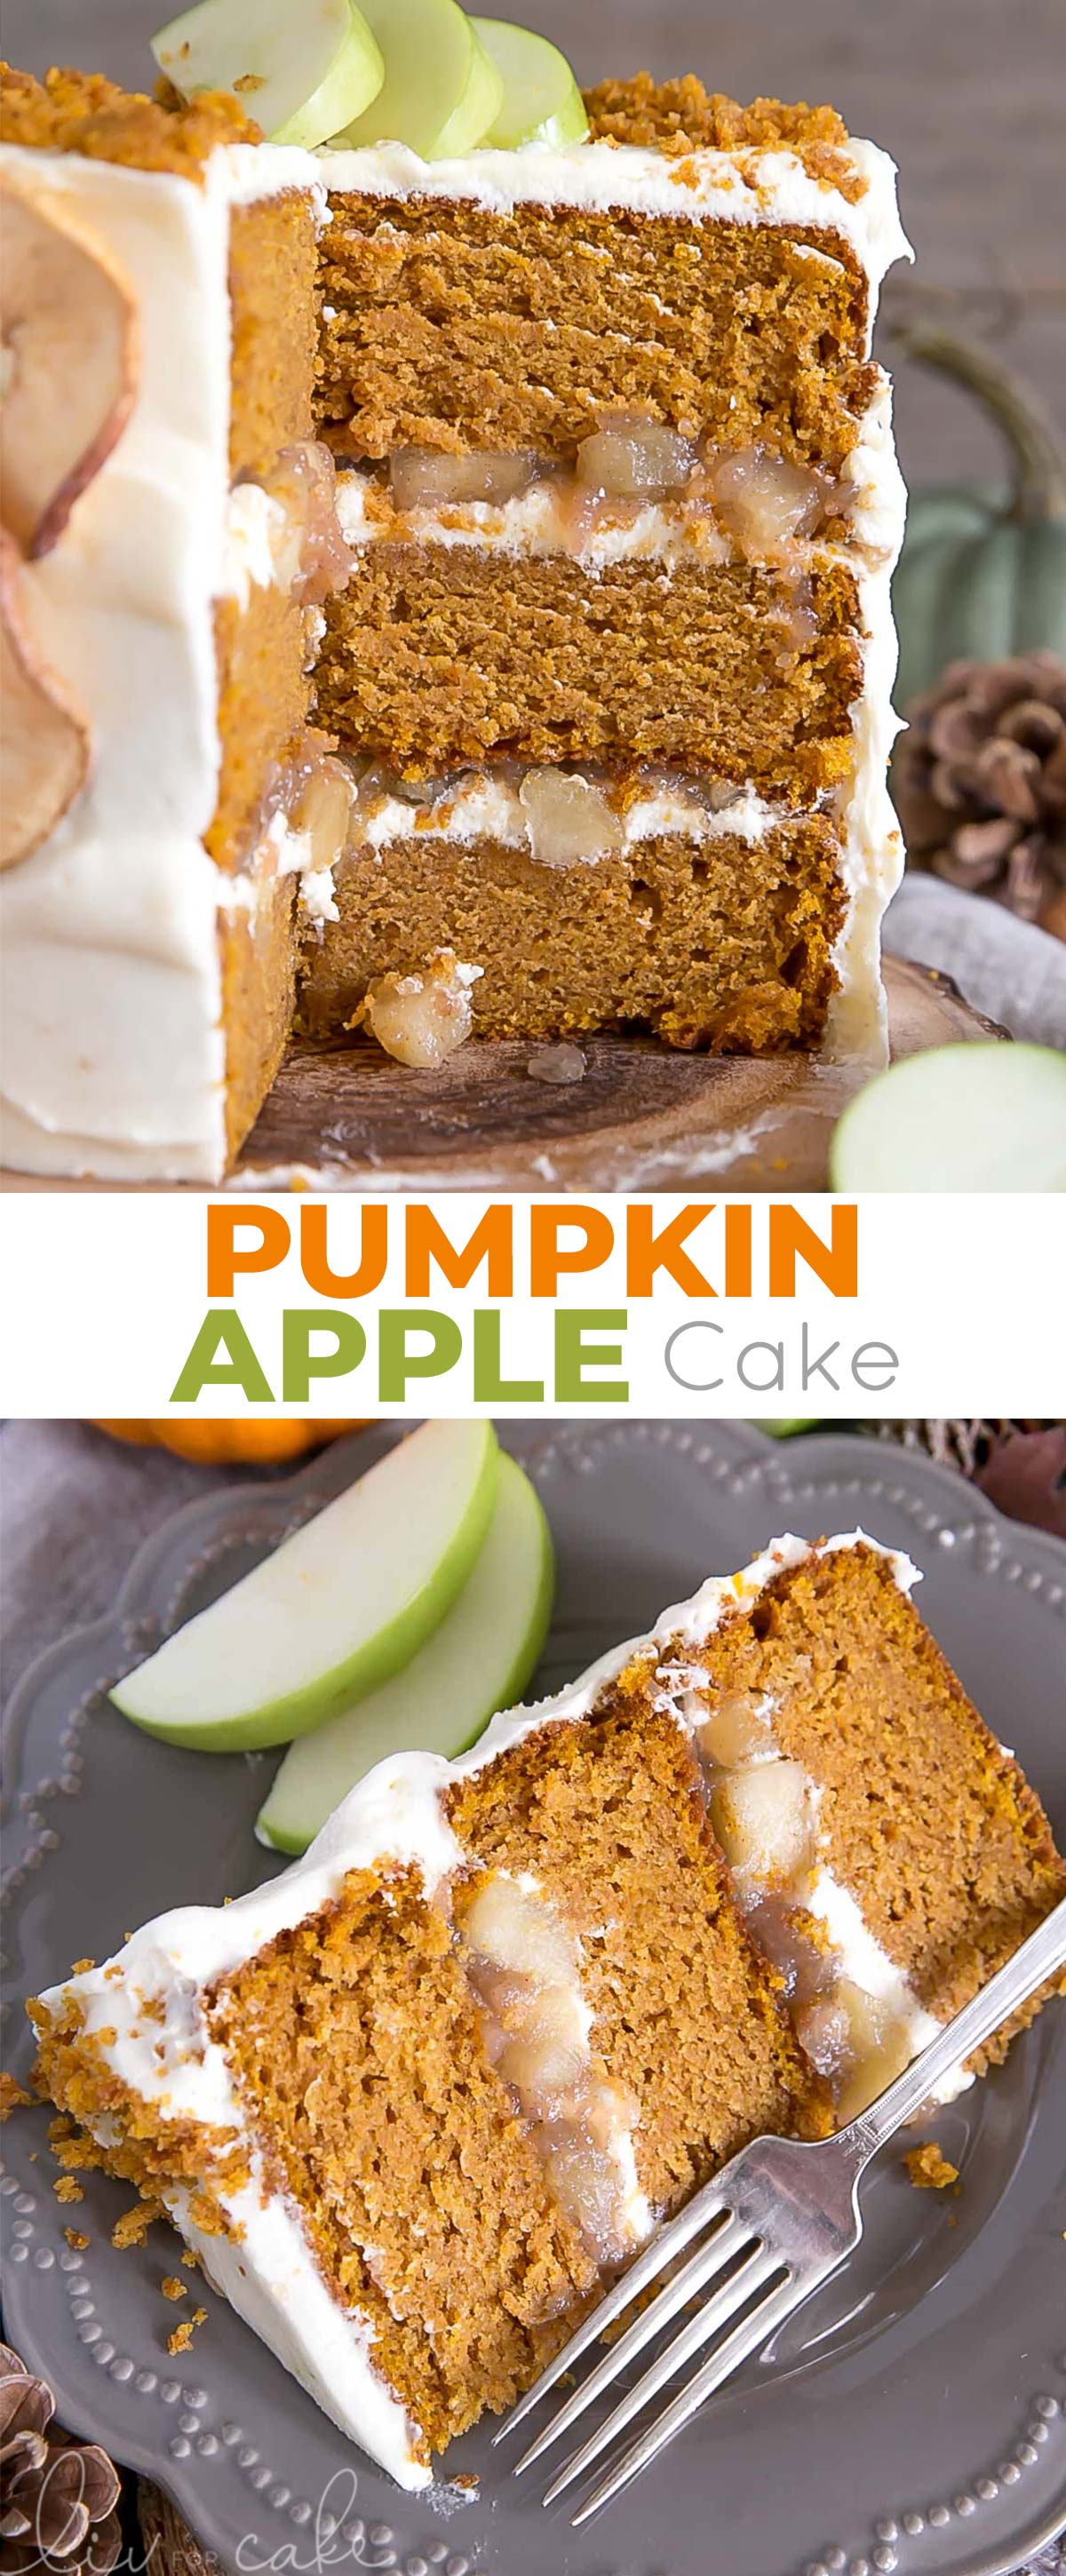 Pumpkin apple cake photo collage